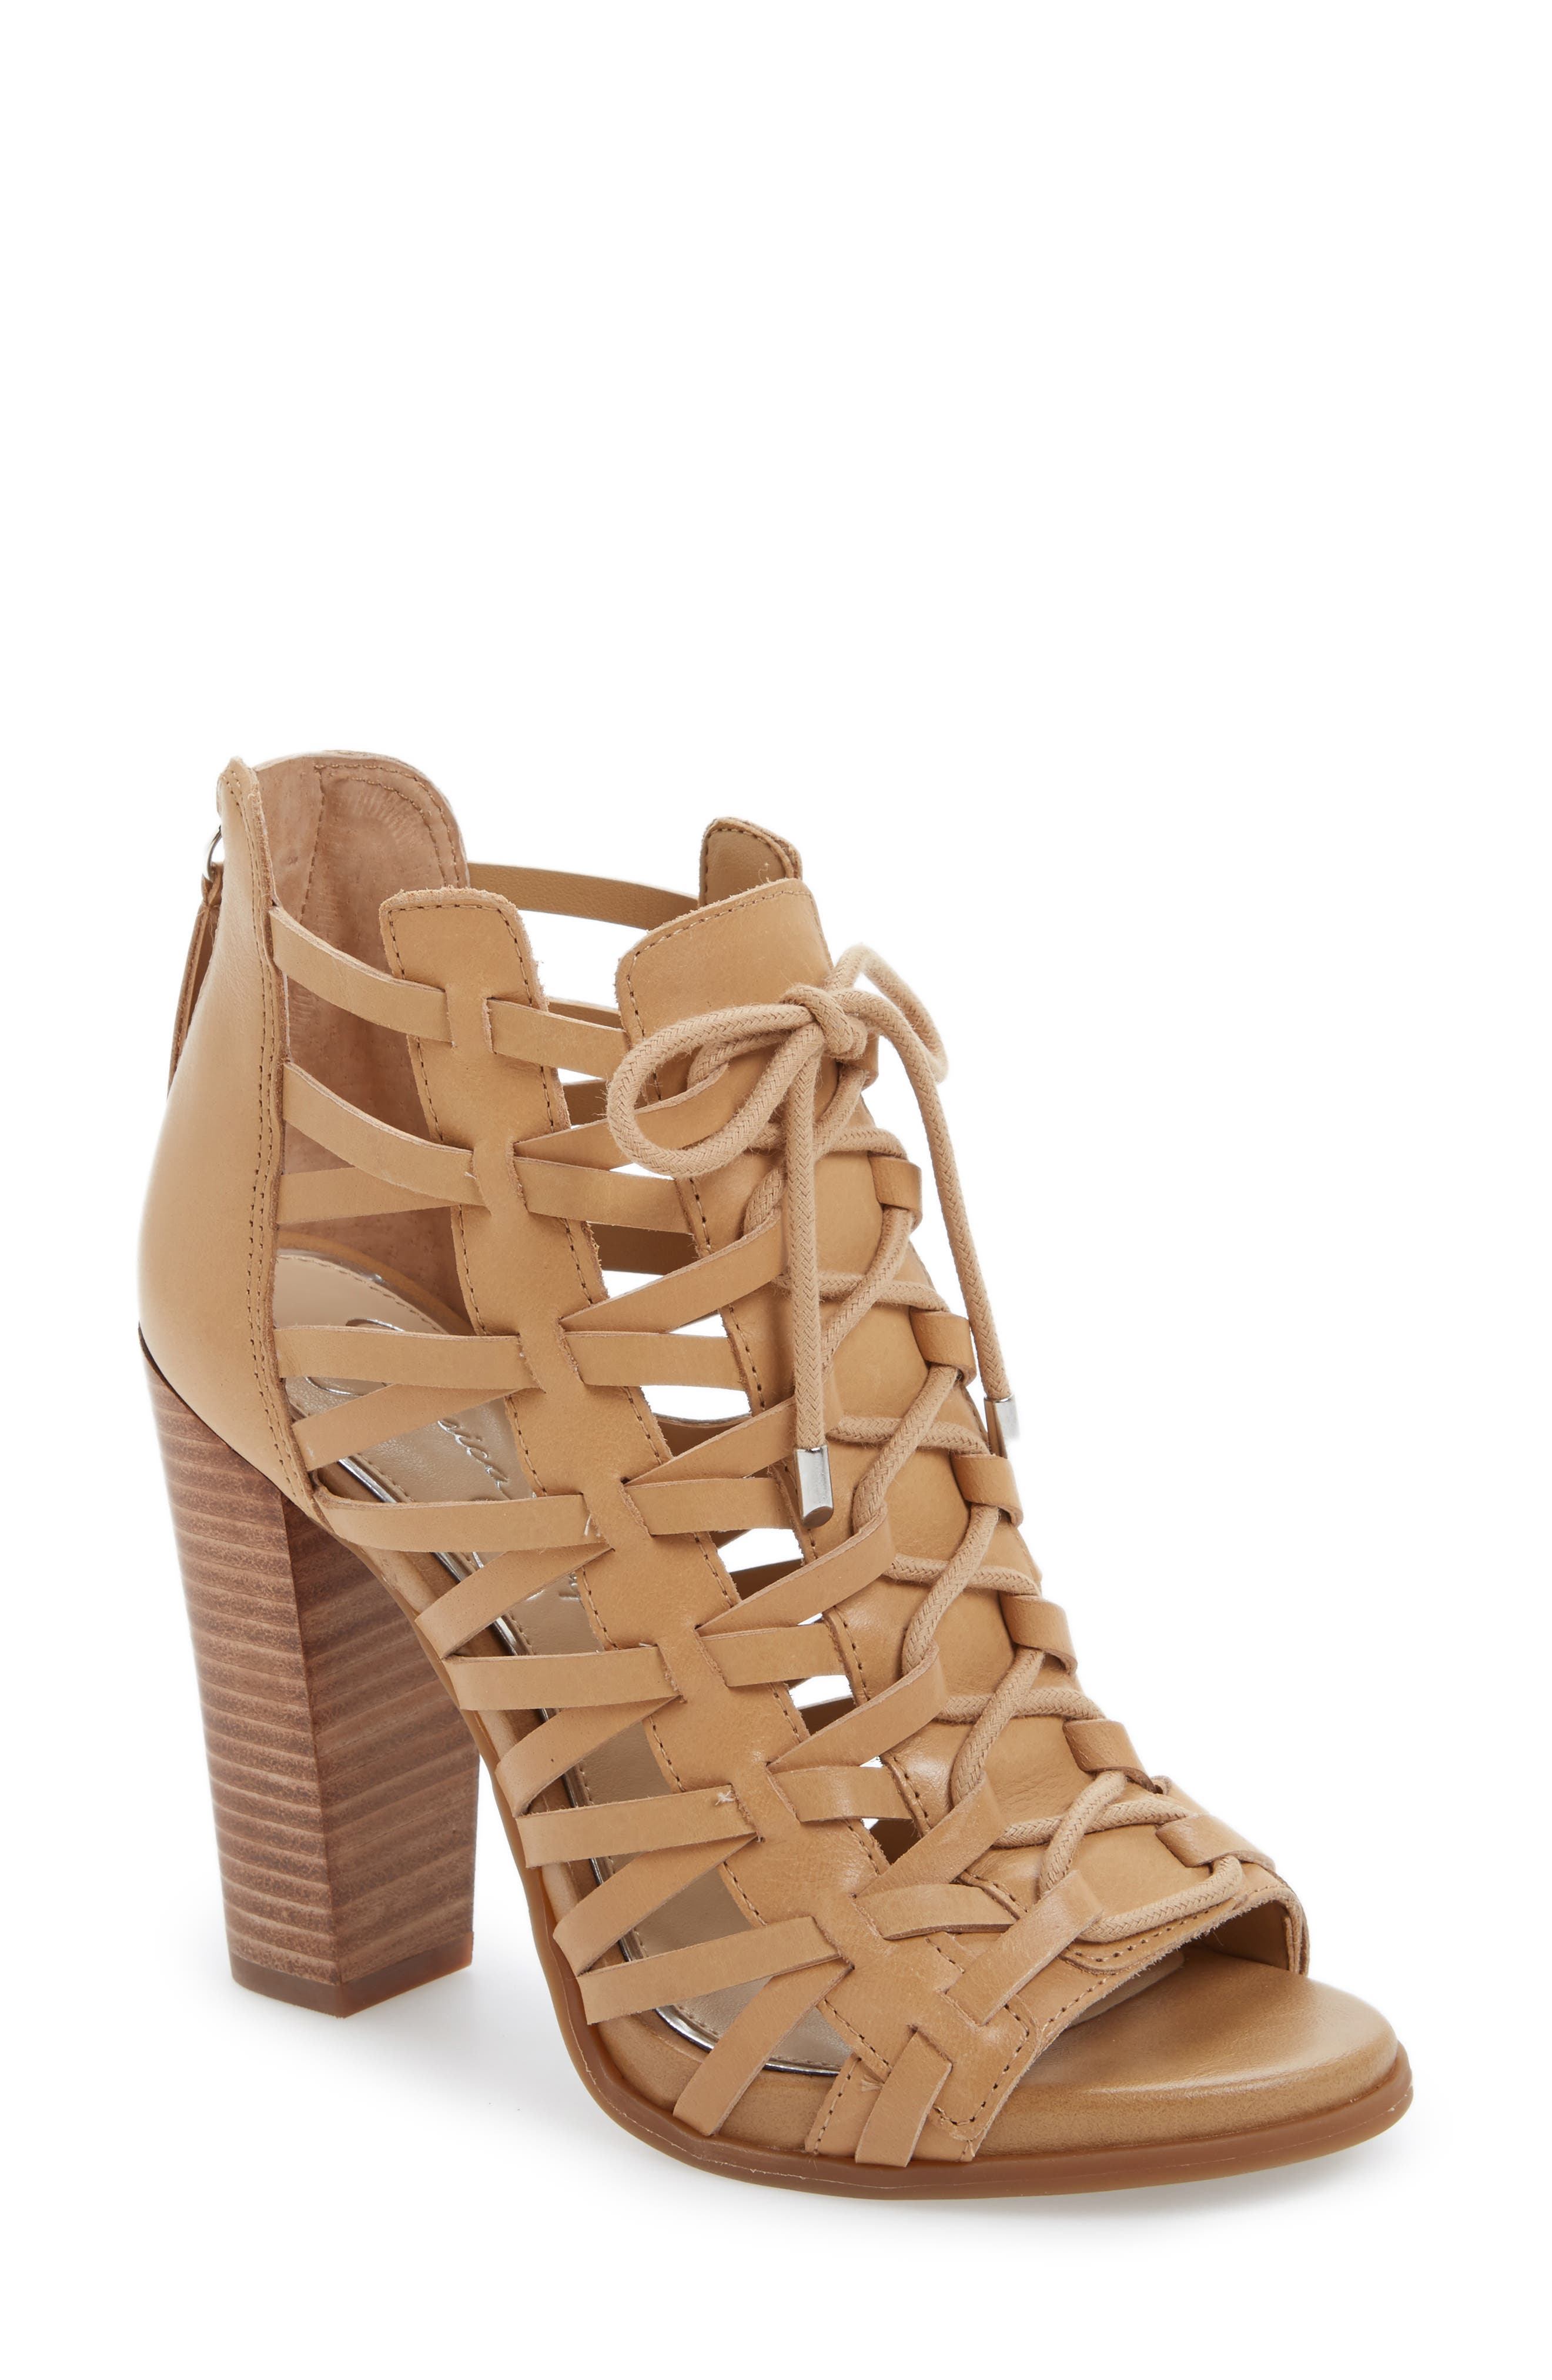 Riana Lace-Up Bootie, Main, color, 200